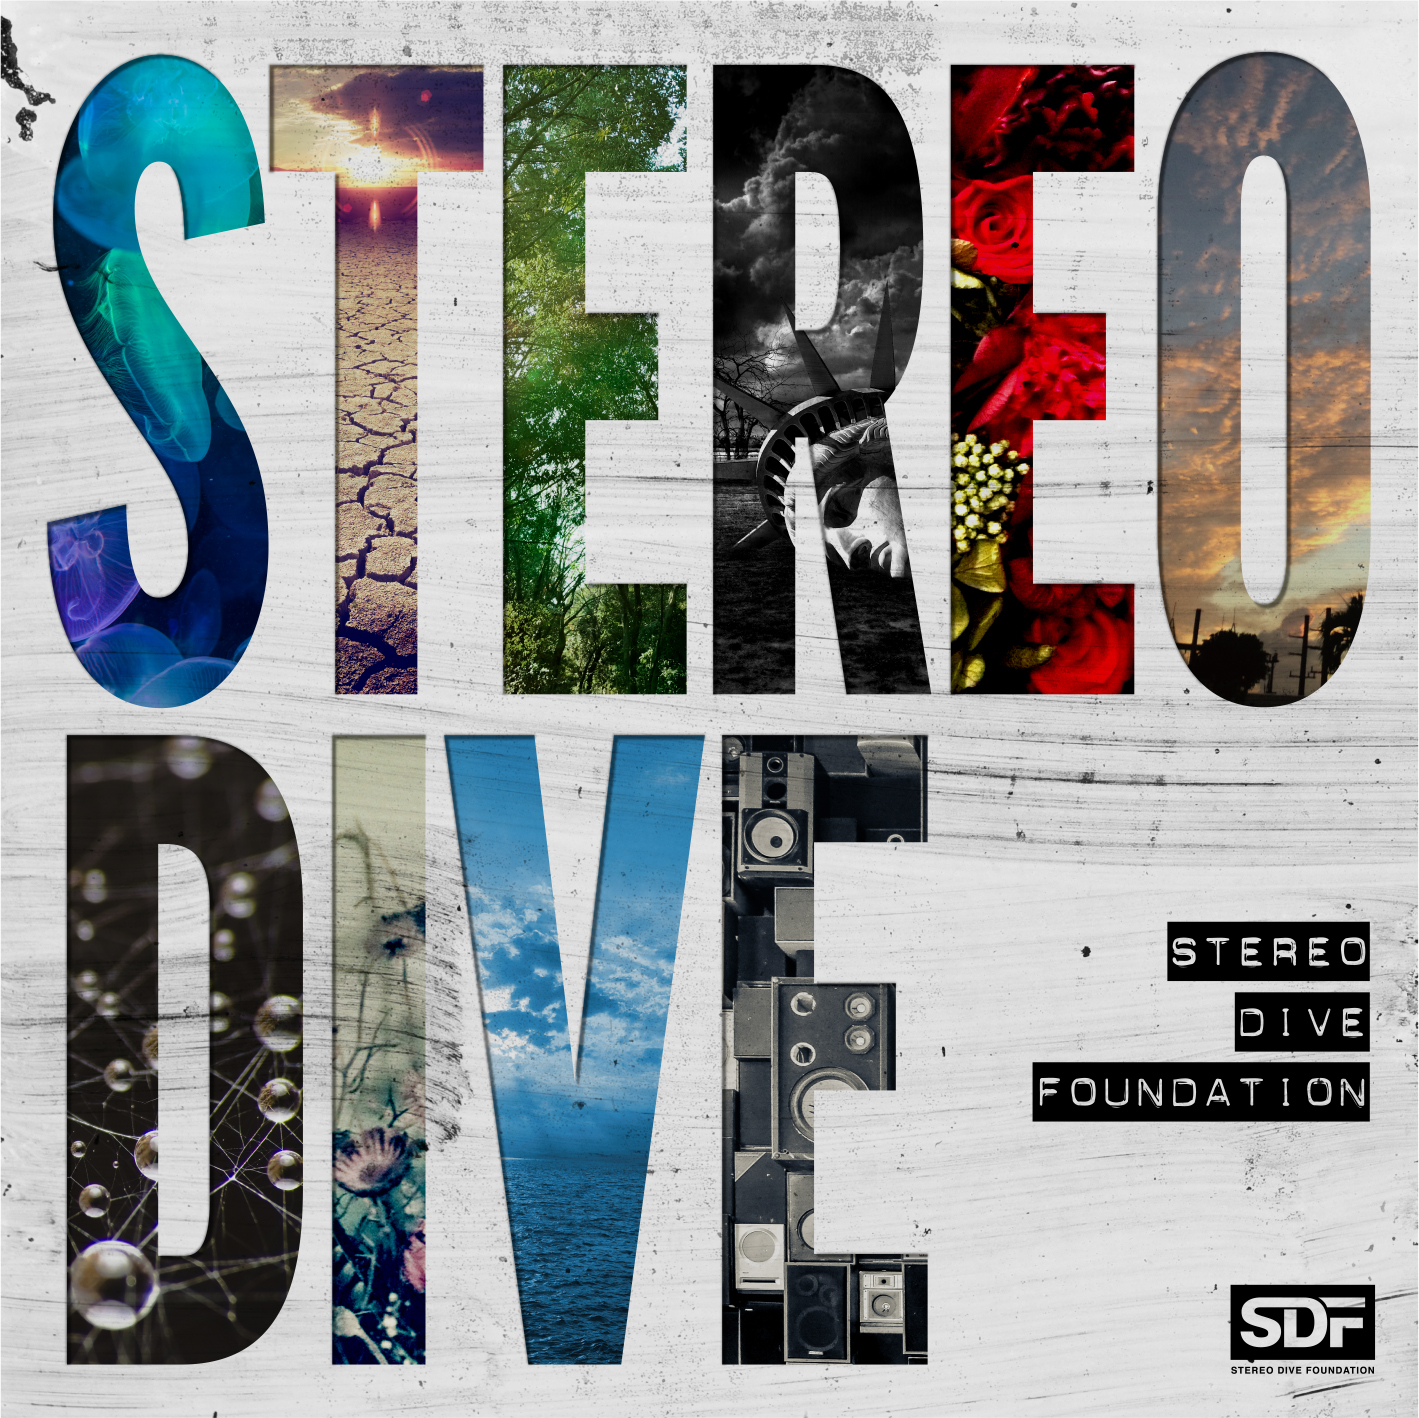 STEREO DIVE FOUNDATION 1st ALBUM『STEREO DIVE』サブスクリプションサービスでの配信開始